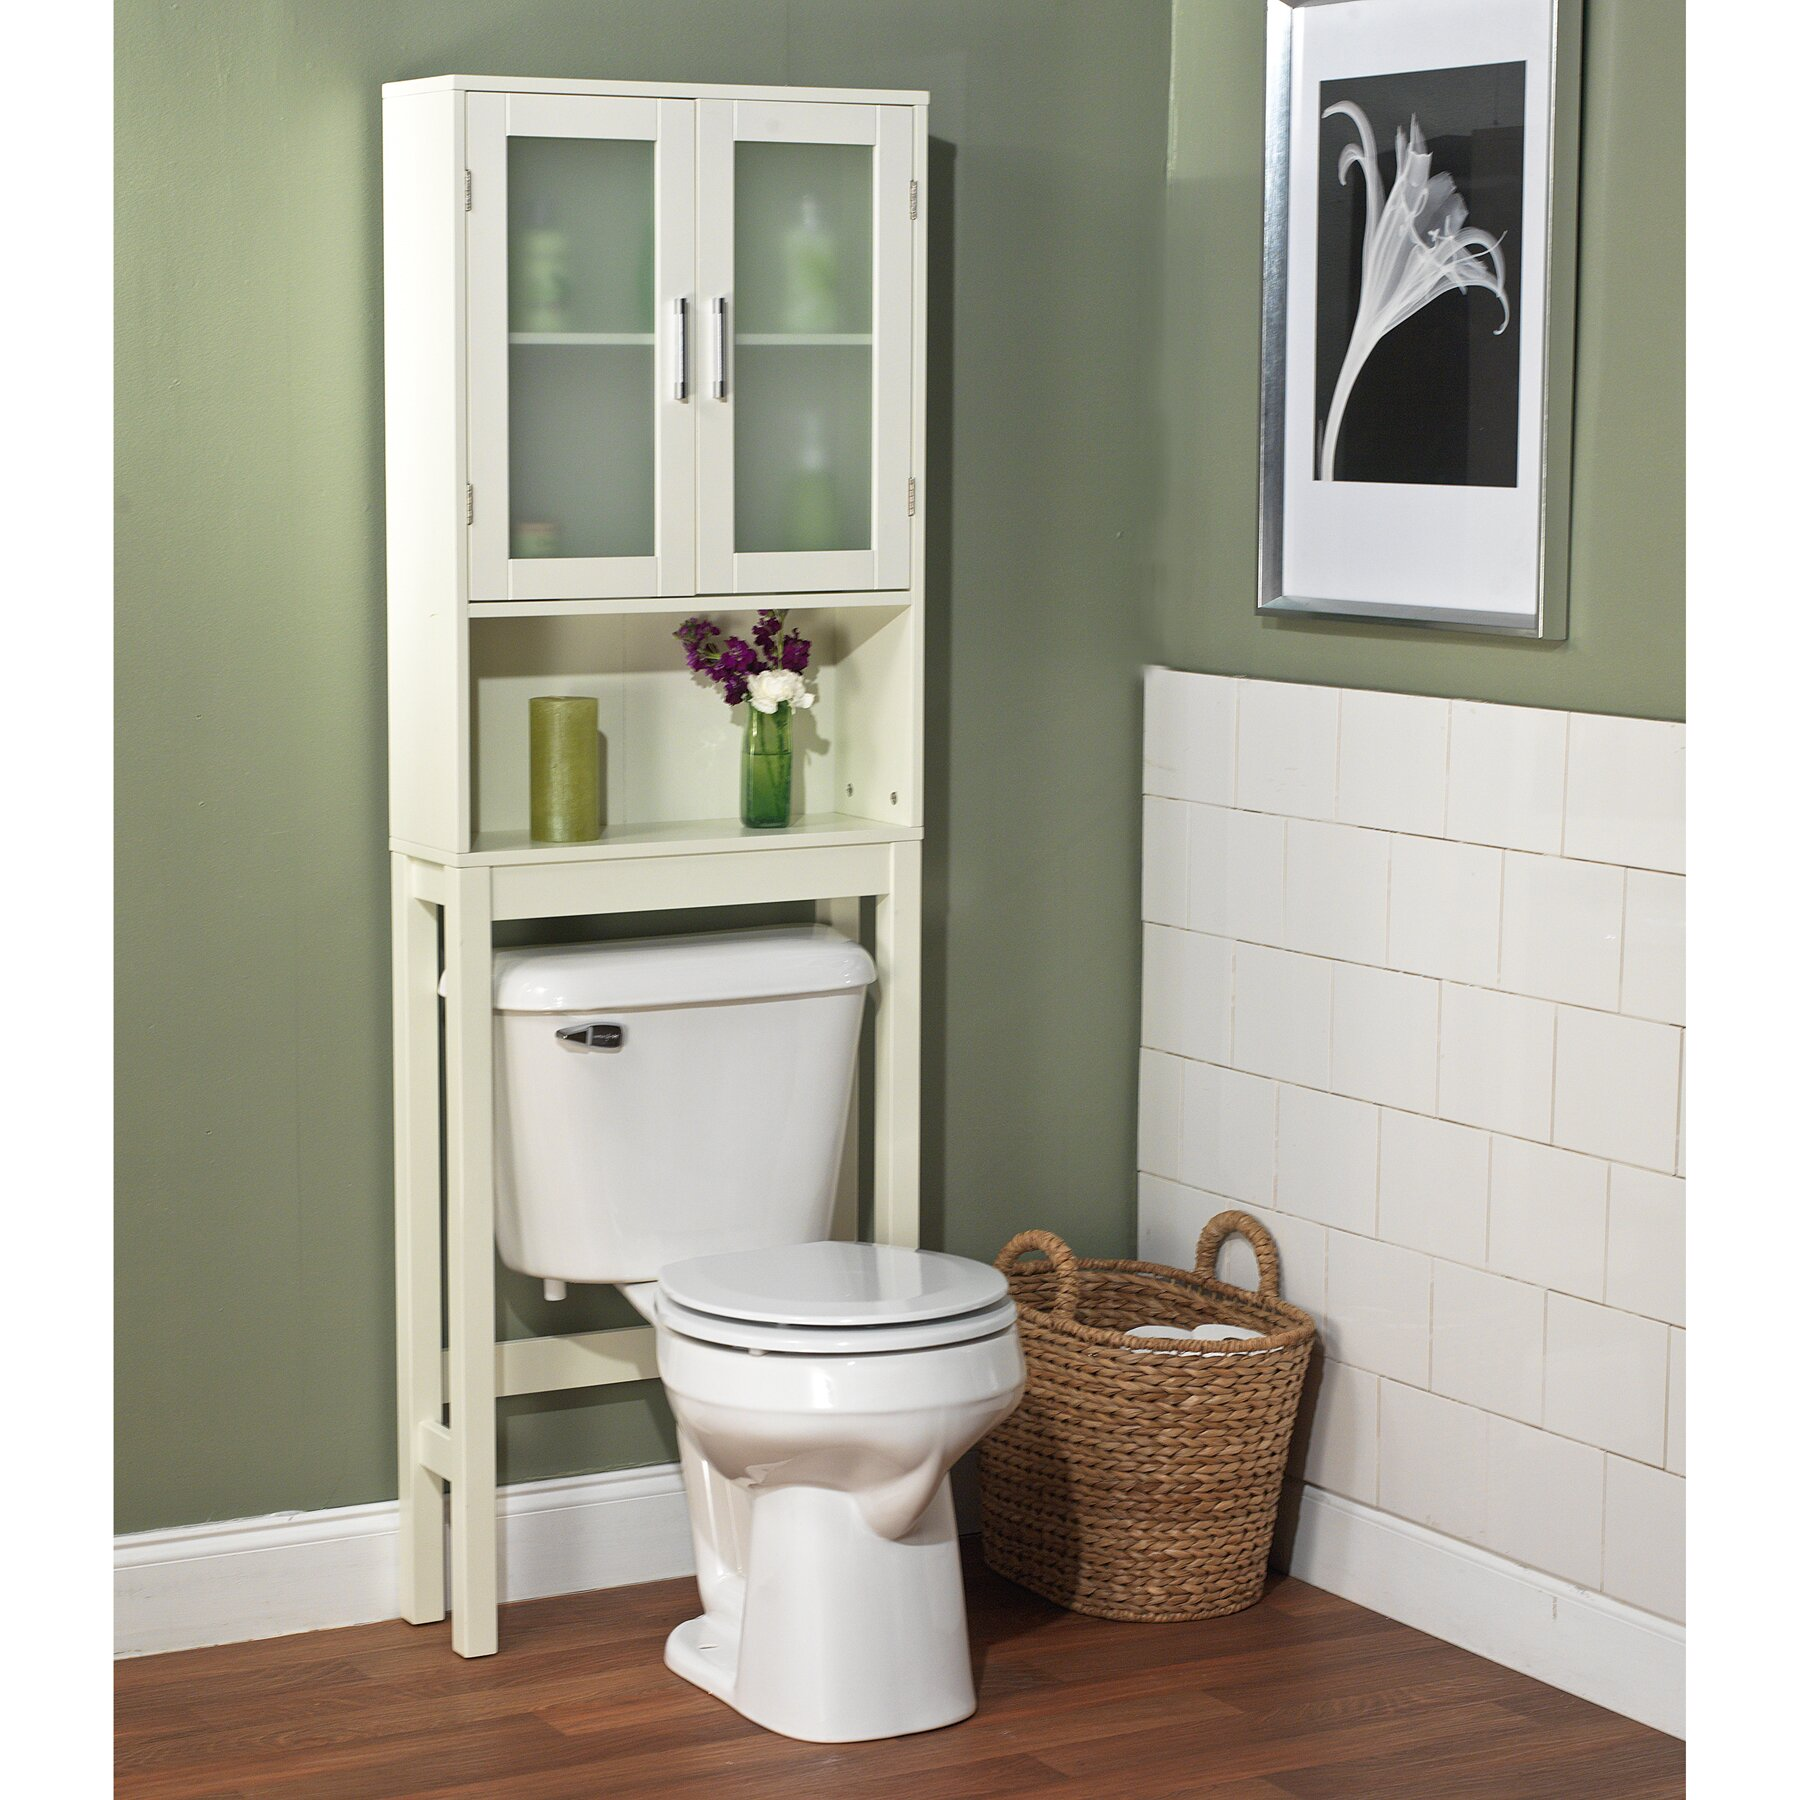 over-toilet storage cabinet & reviews | joss & main